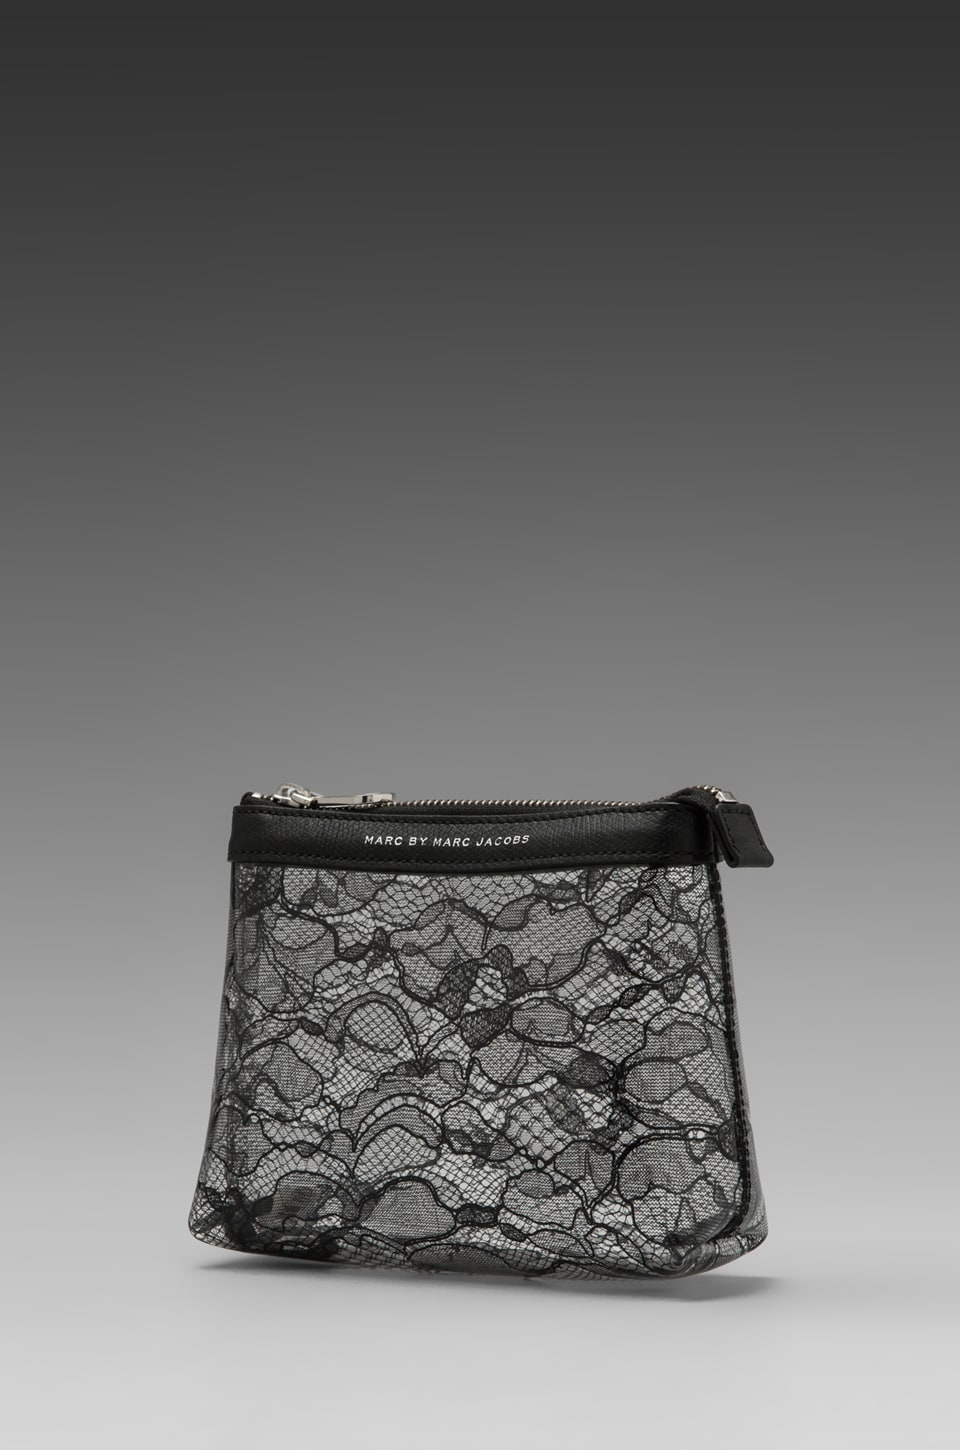 Marc by Marc Jacobs Lace Landscape Cosmetic Bag in Black